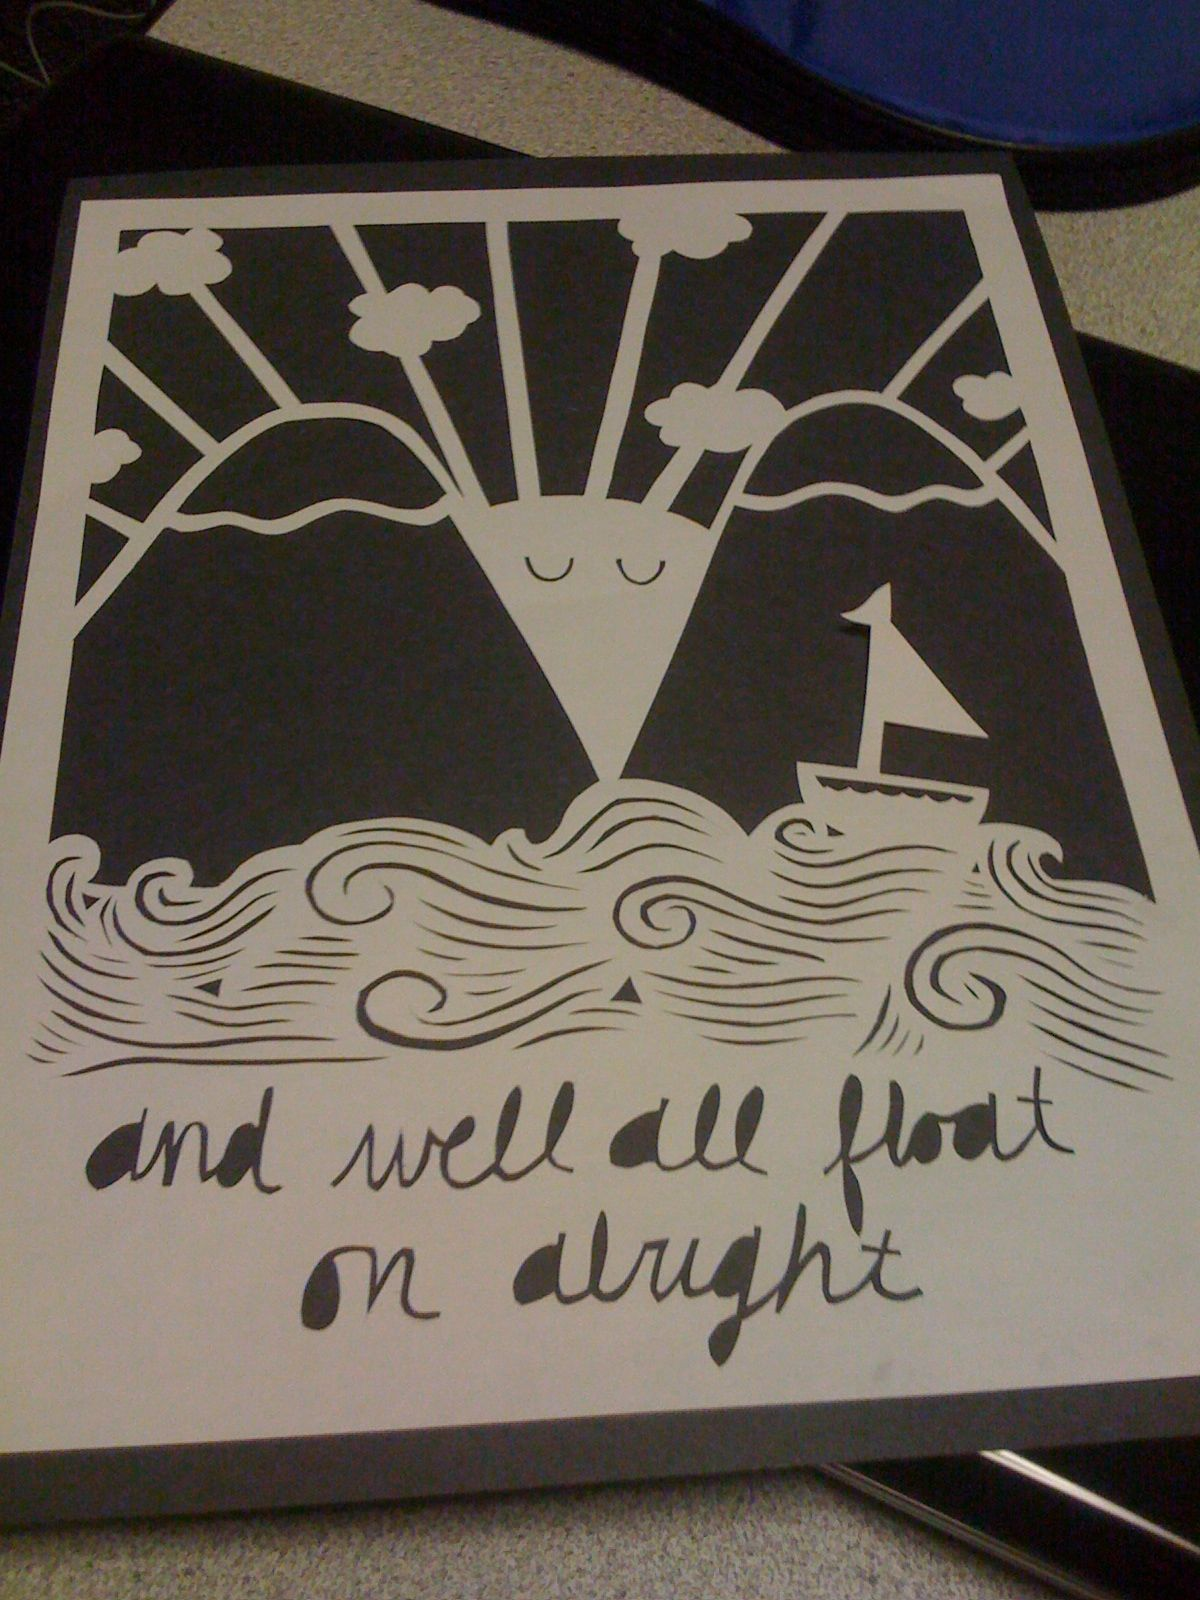 paper cutting: And we'll all float on alright. didn't add the apostrophe yet.